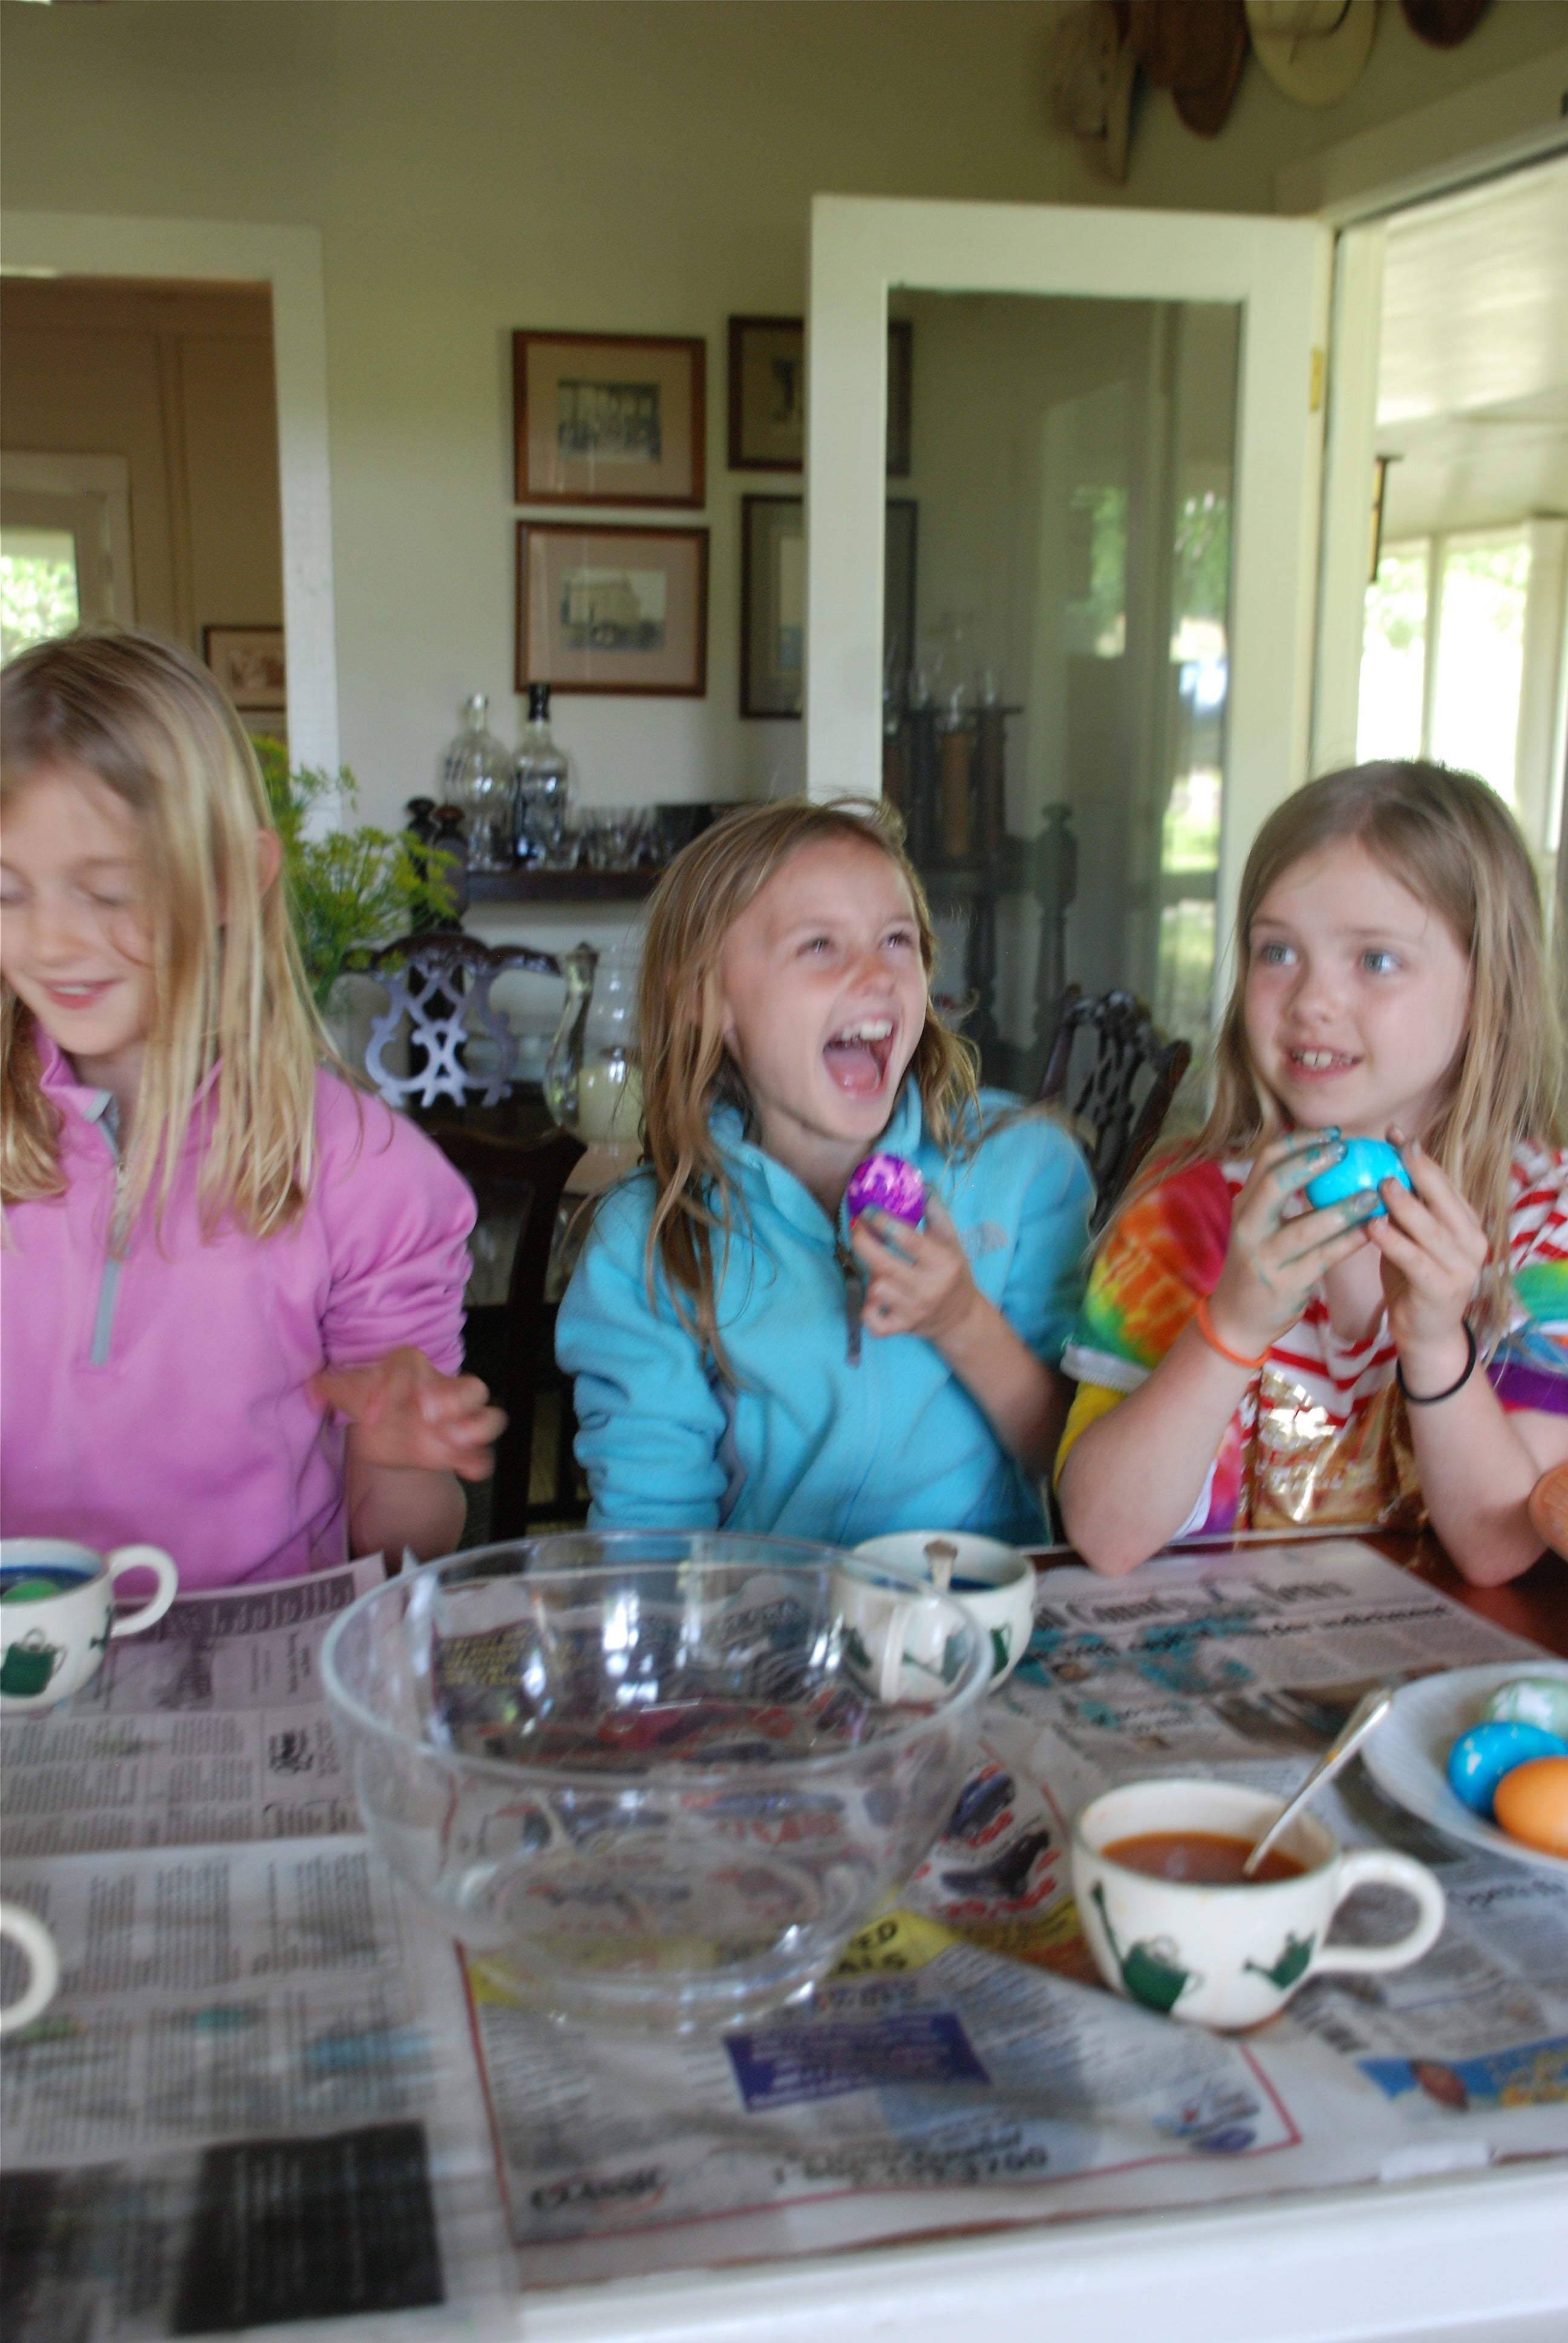 Girls laughing and having fun while dying eggs